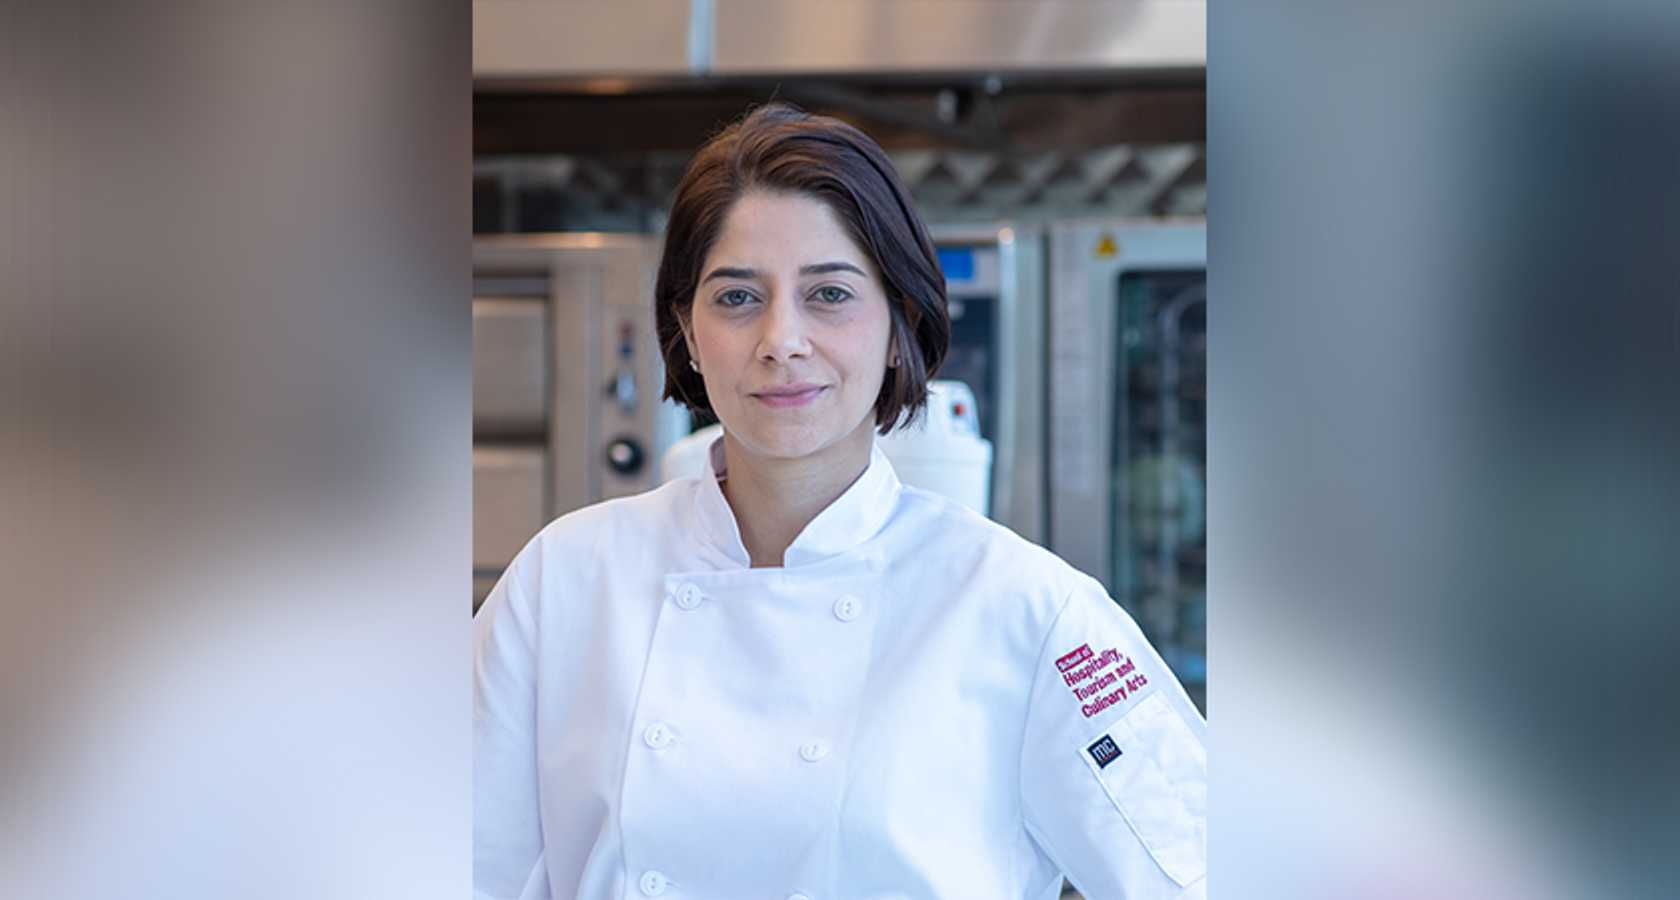 Centennial Women in Non-Traditional Careers: Lilian Cardoso cooks up her own success. image